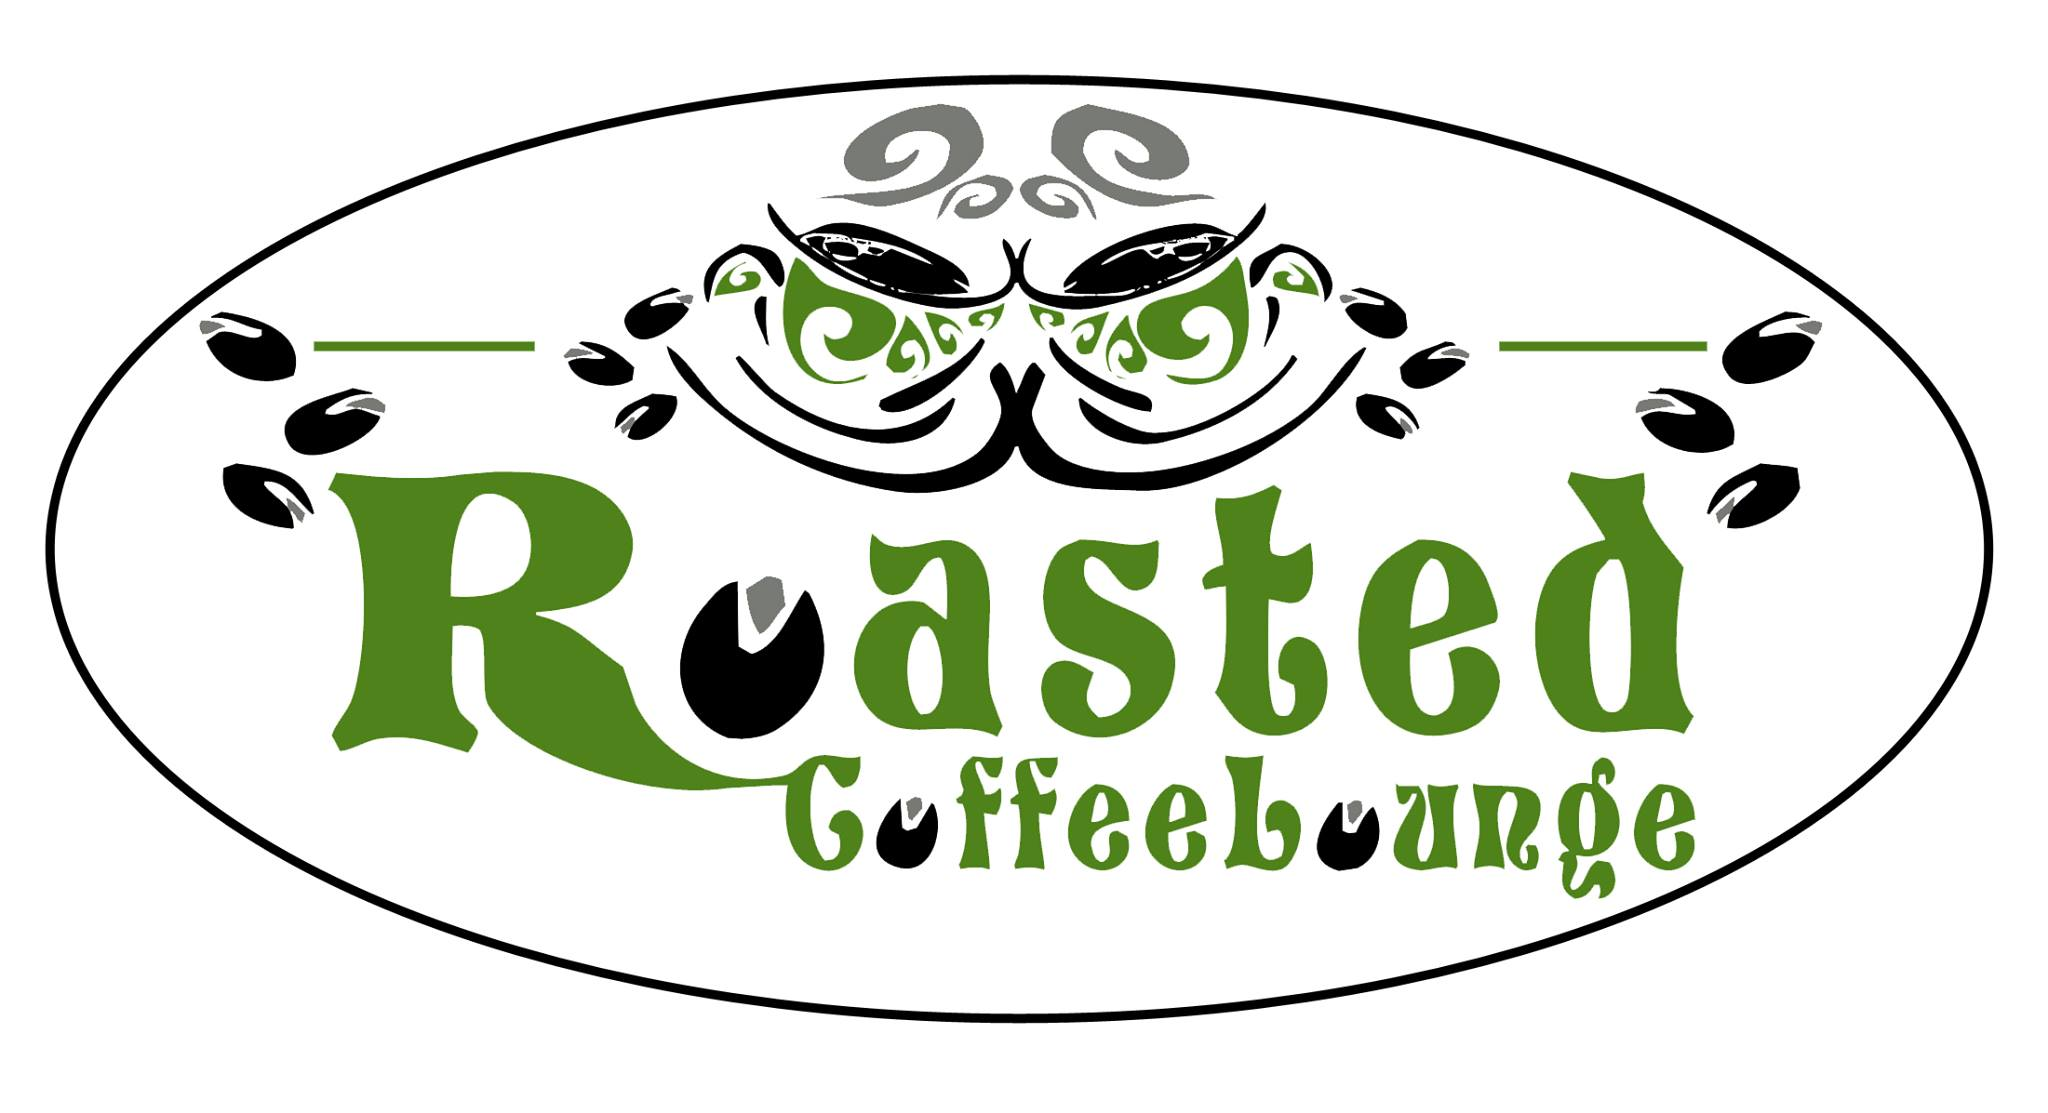 Roasted Coffee Lounge